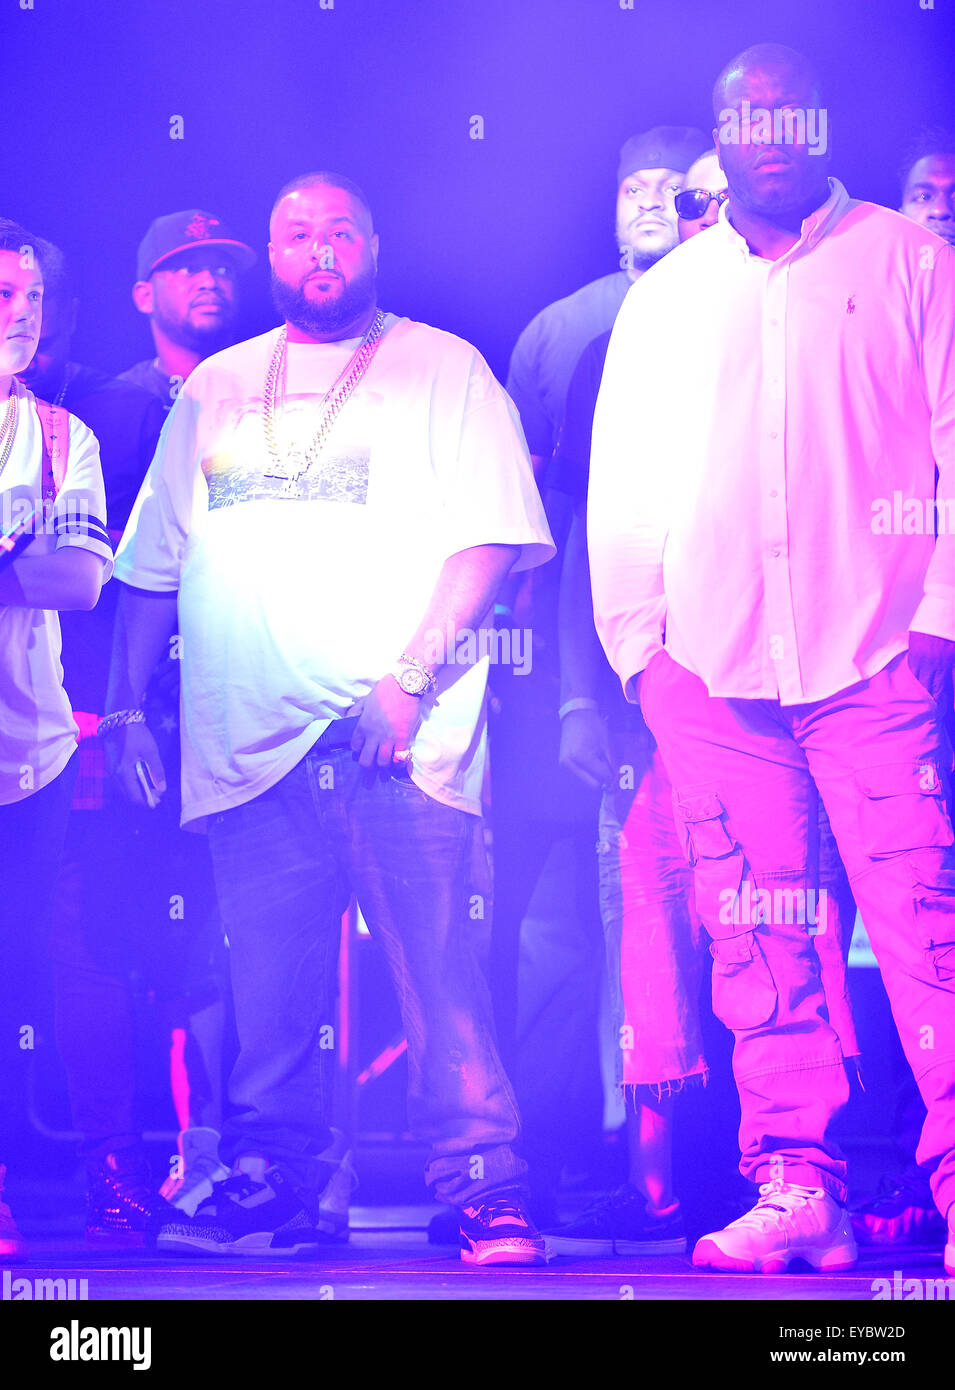 99 Jamz Summer Concert At The BBT Center Featuring DJ Khaled E Class Where Sunrise Florida United States When 24 May 2015